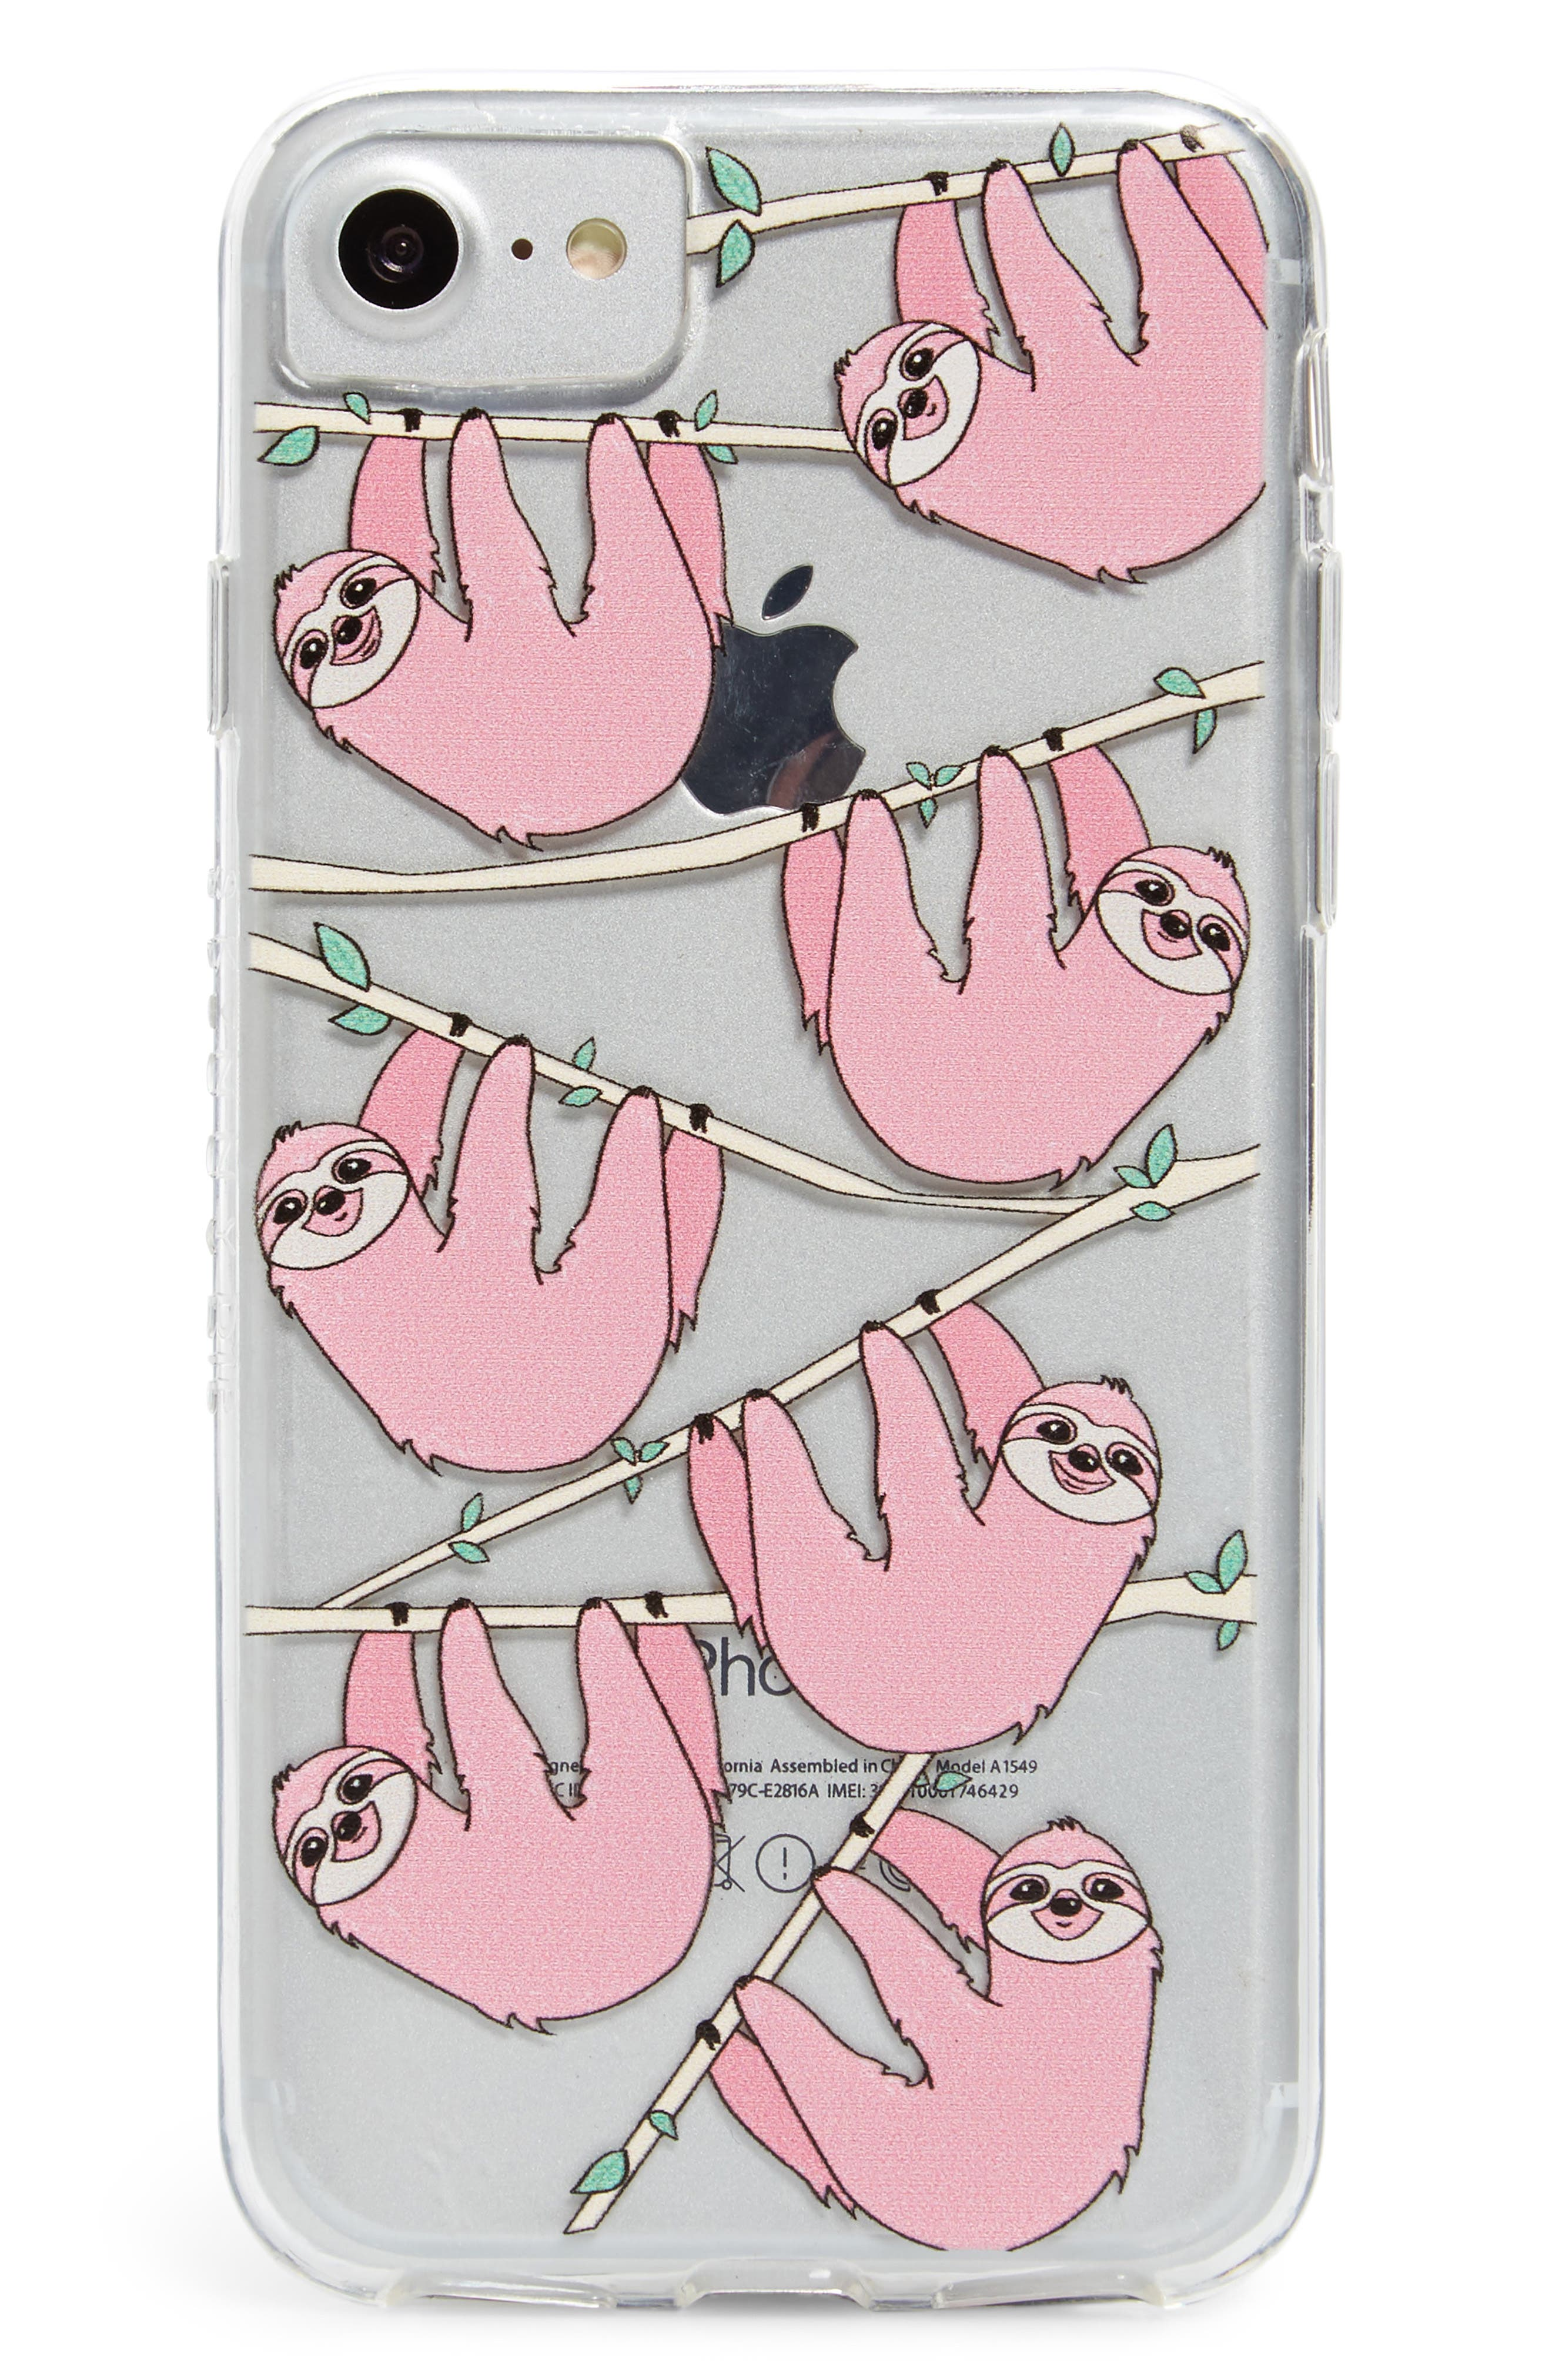 Skinny Dip Sloth iPhone 6/6s/7/8 & 6/6s/7/8 Plus Case,                             Main thumbnail 1, color,                             650